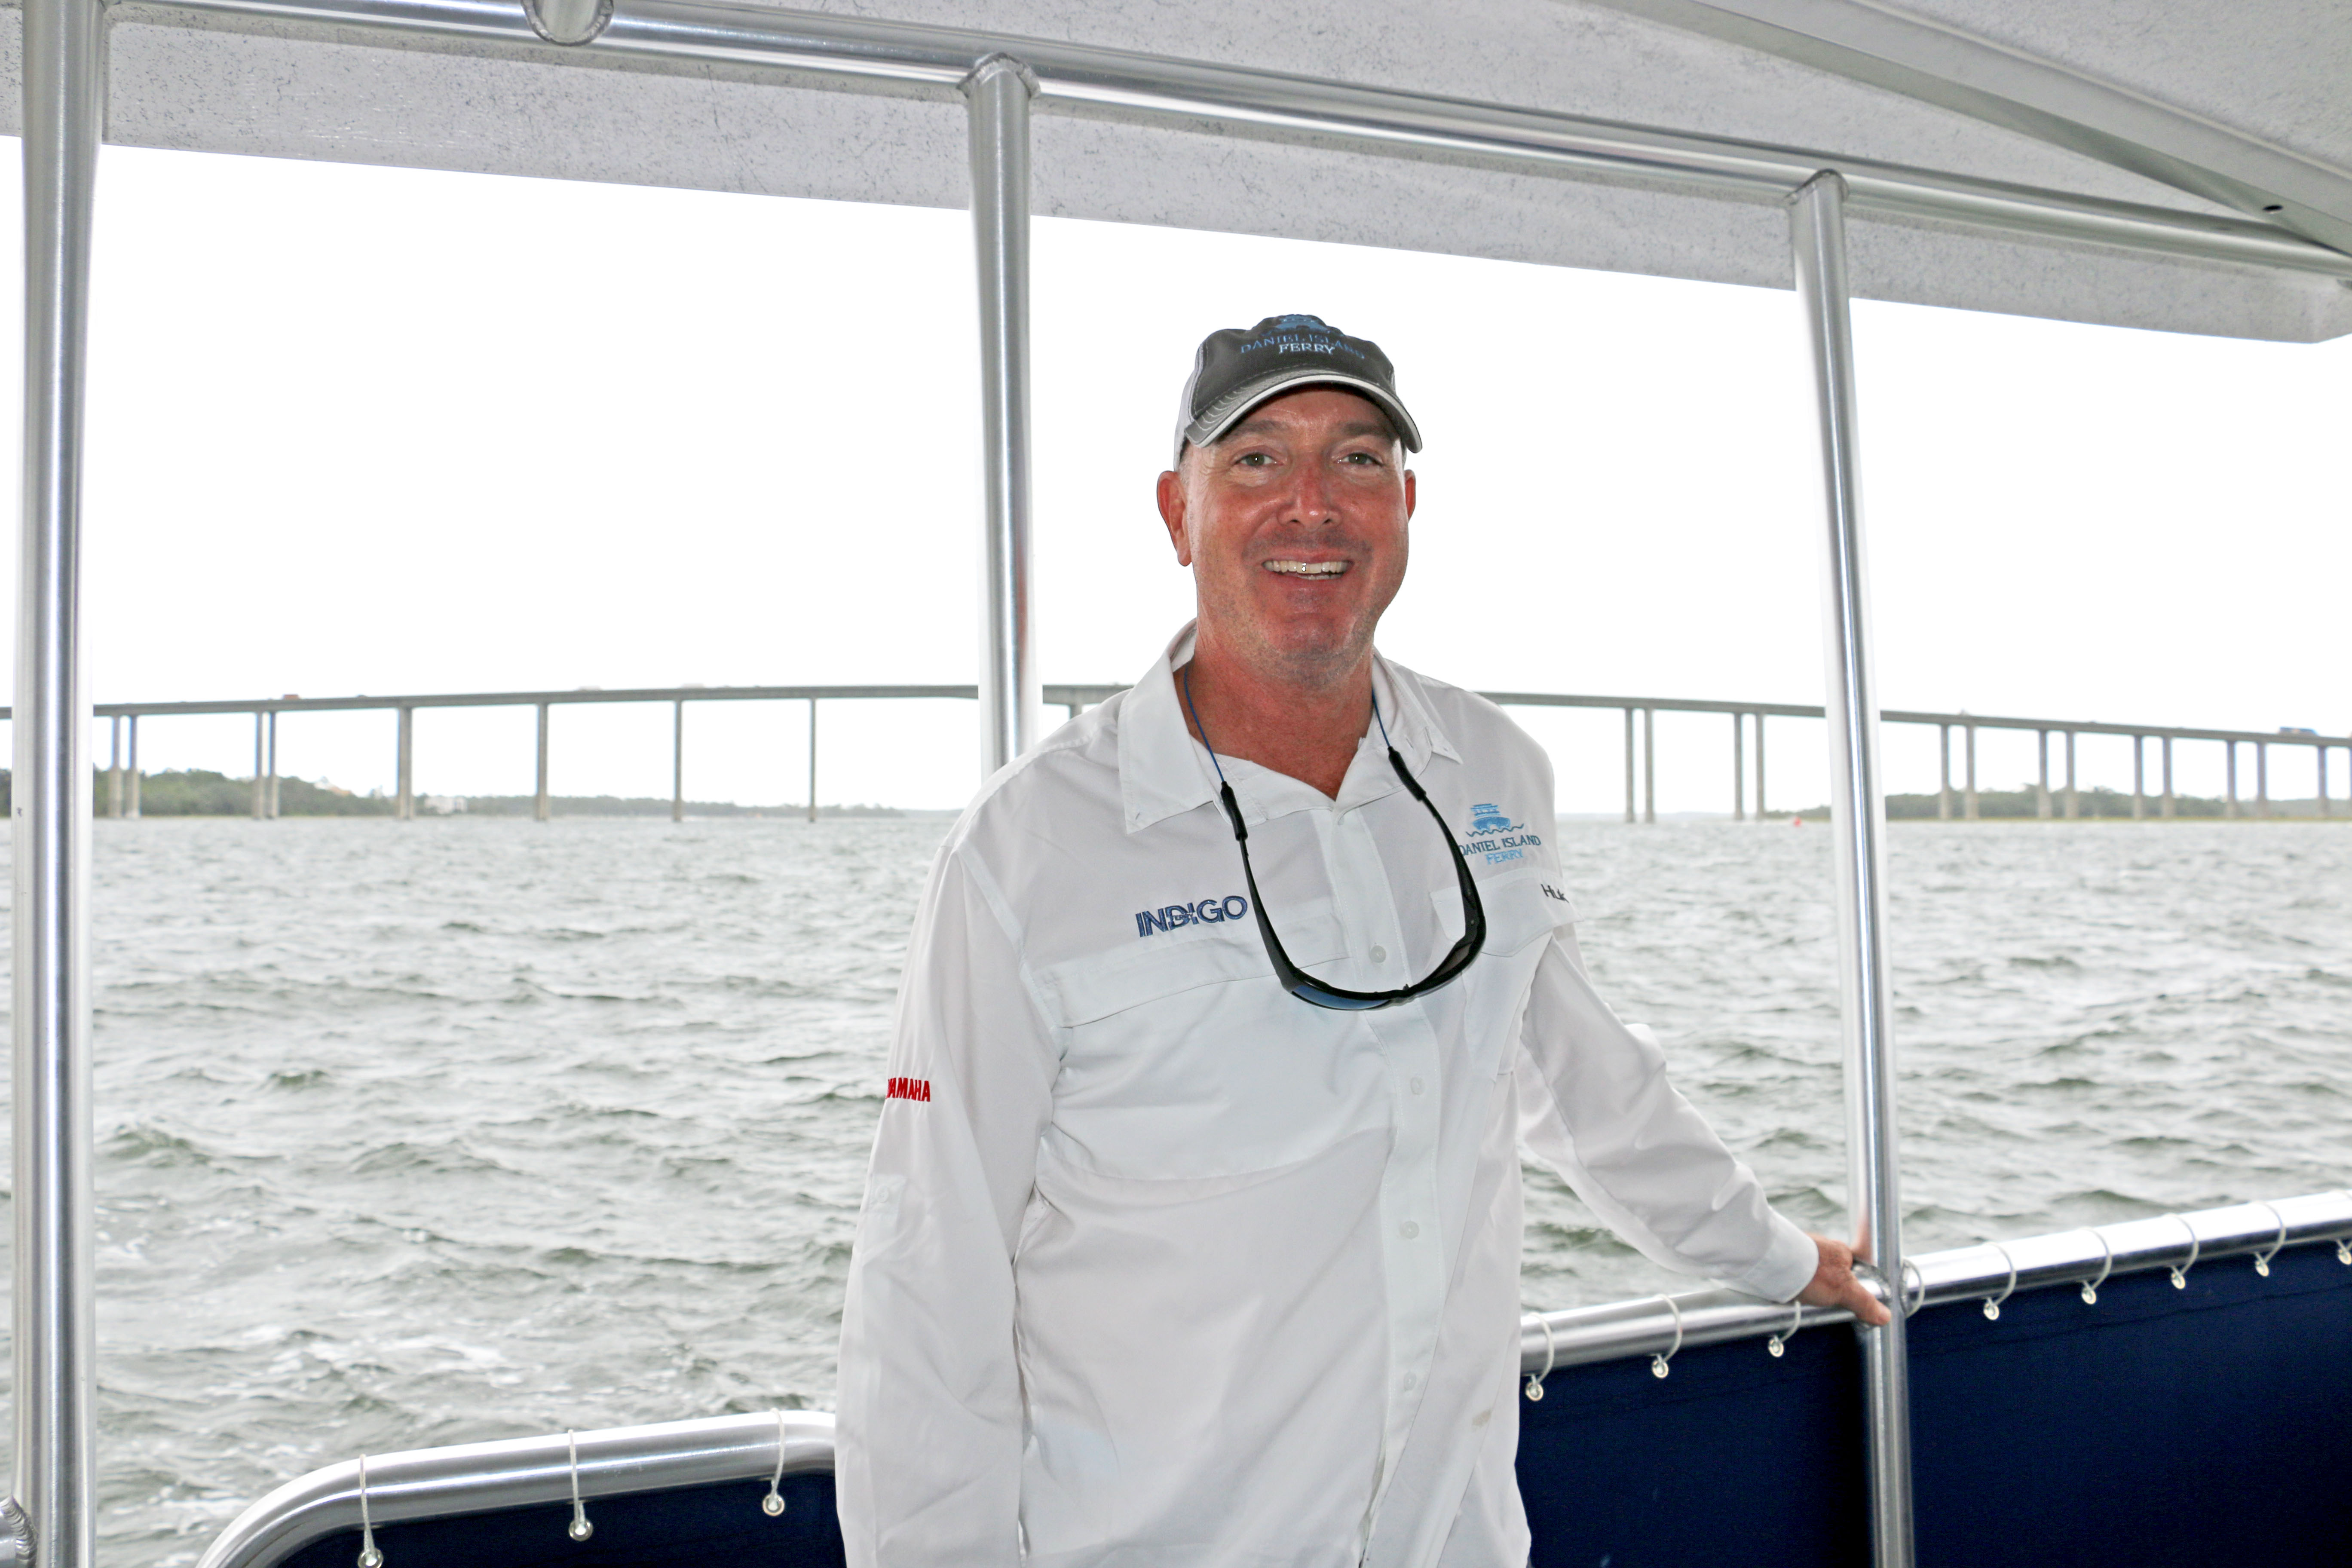 Chip Deaton, co-owner and captain of Daniel Island Ferry, is seen aboard the new boat, Indigo, that will begin service for passengers going between Daniel Island and downtown Charleston.